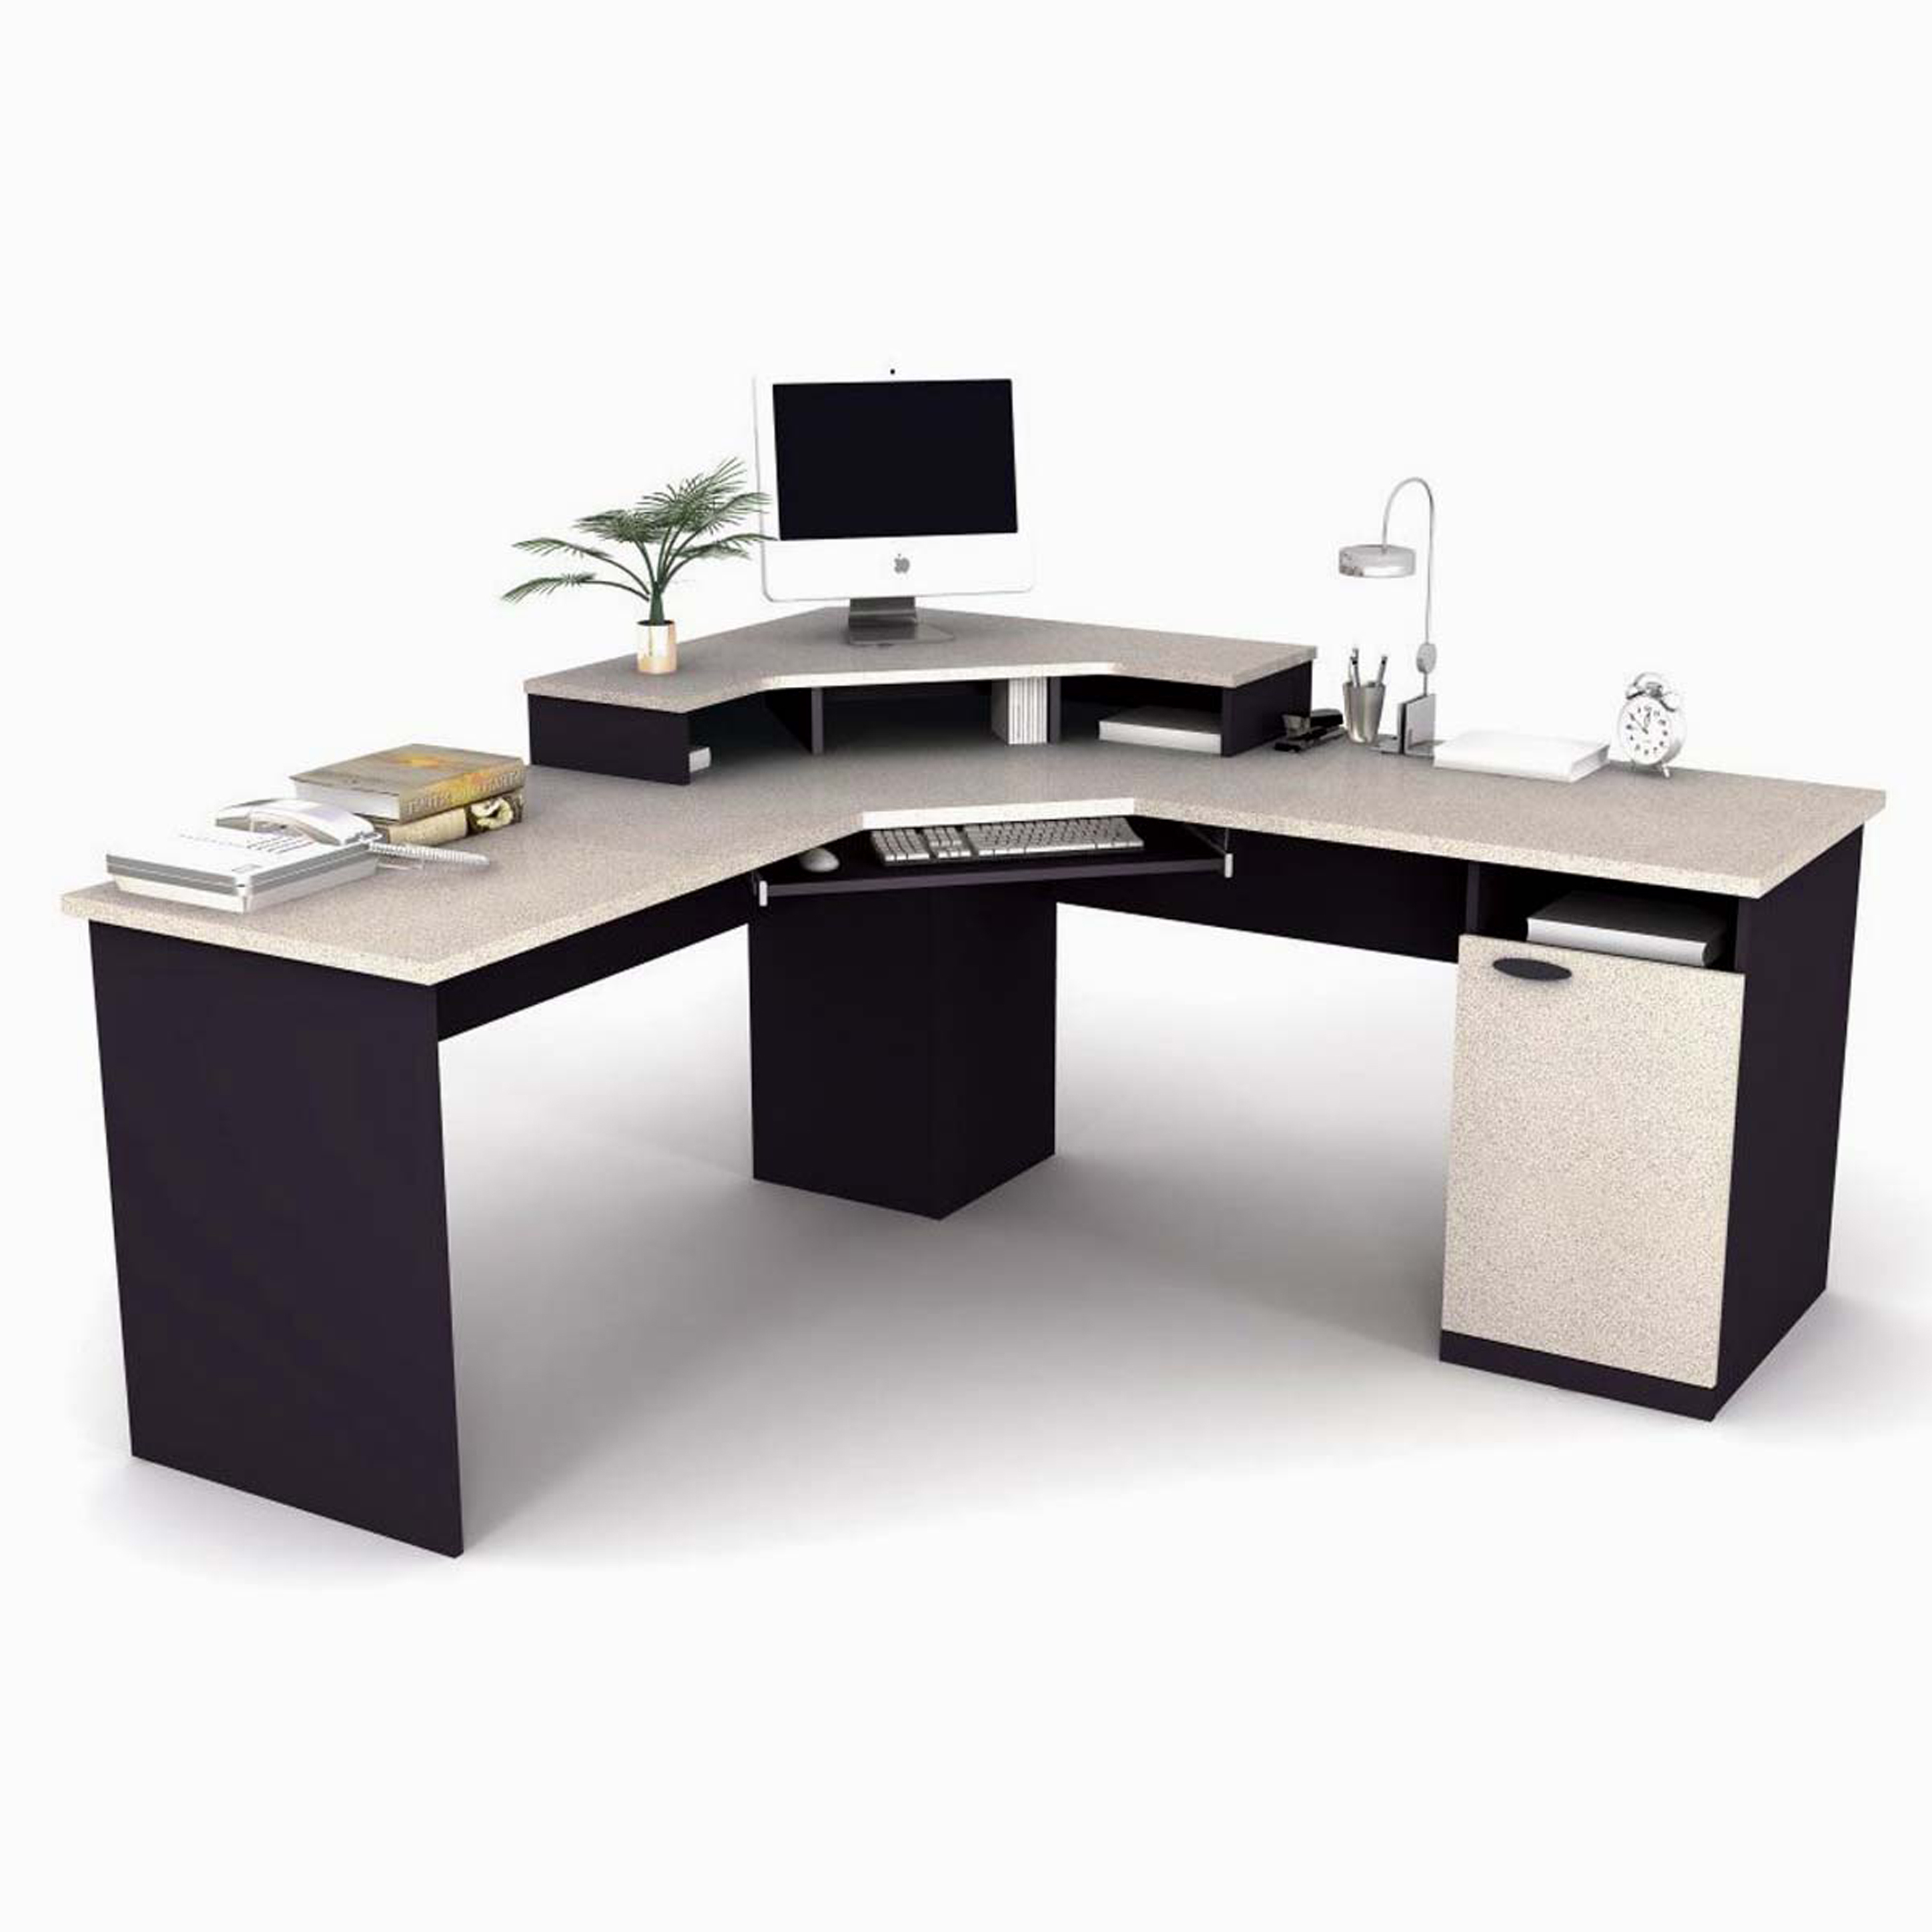 Miraculous Modern Home Office Desk Design Idea In Black And White With White Clock White Computer Green Plant And Brown White Books Fabulous Modern Home Office Desk Design Ideas (View 10 of 30)